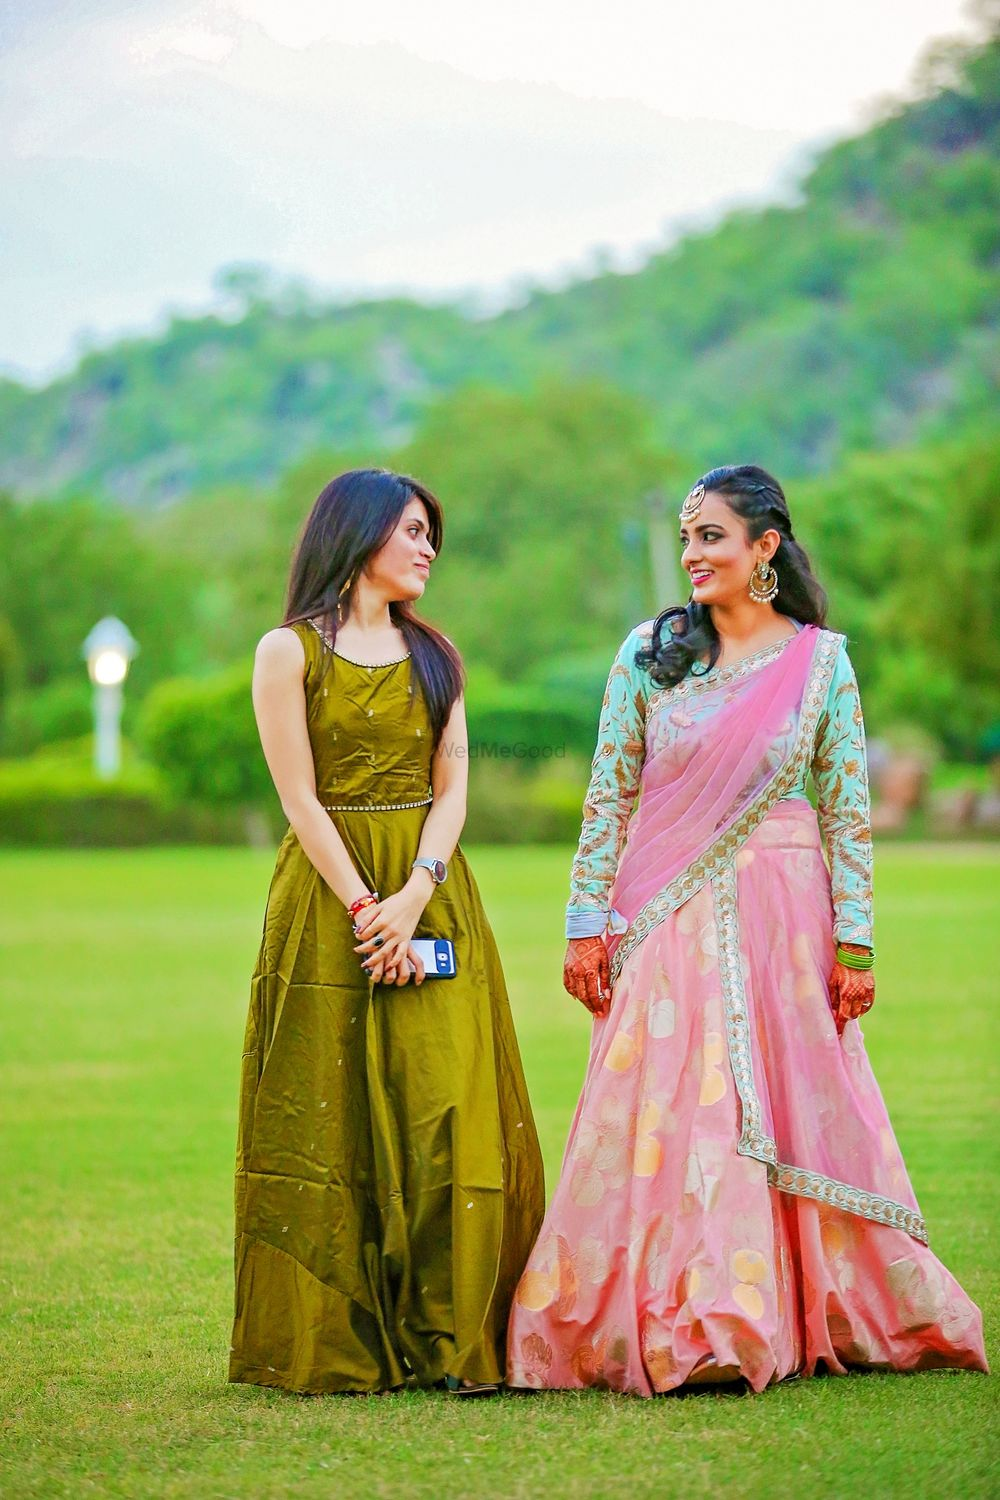 Photo From Shivani on Her Engagement Day - By Finding Focus Films